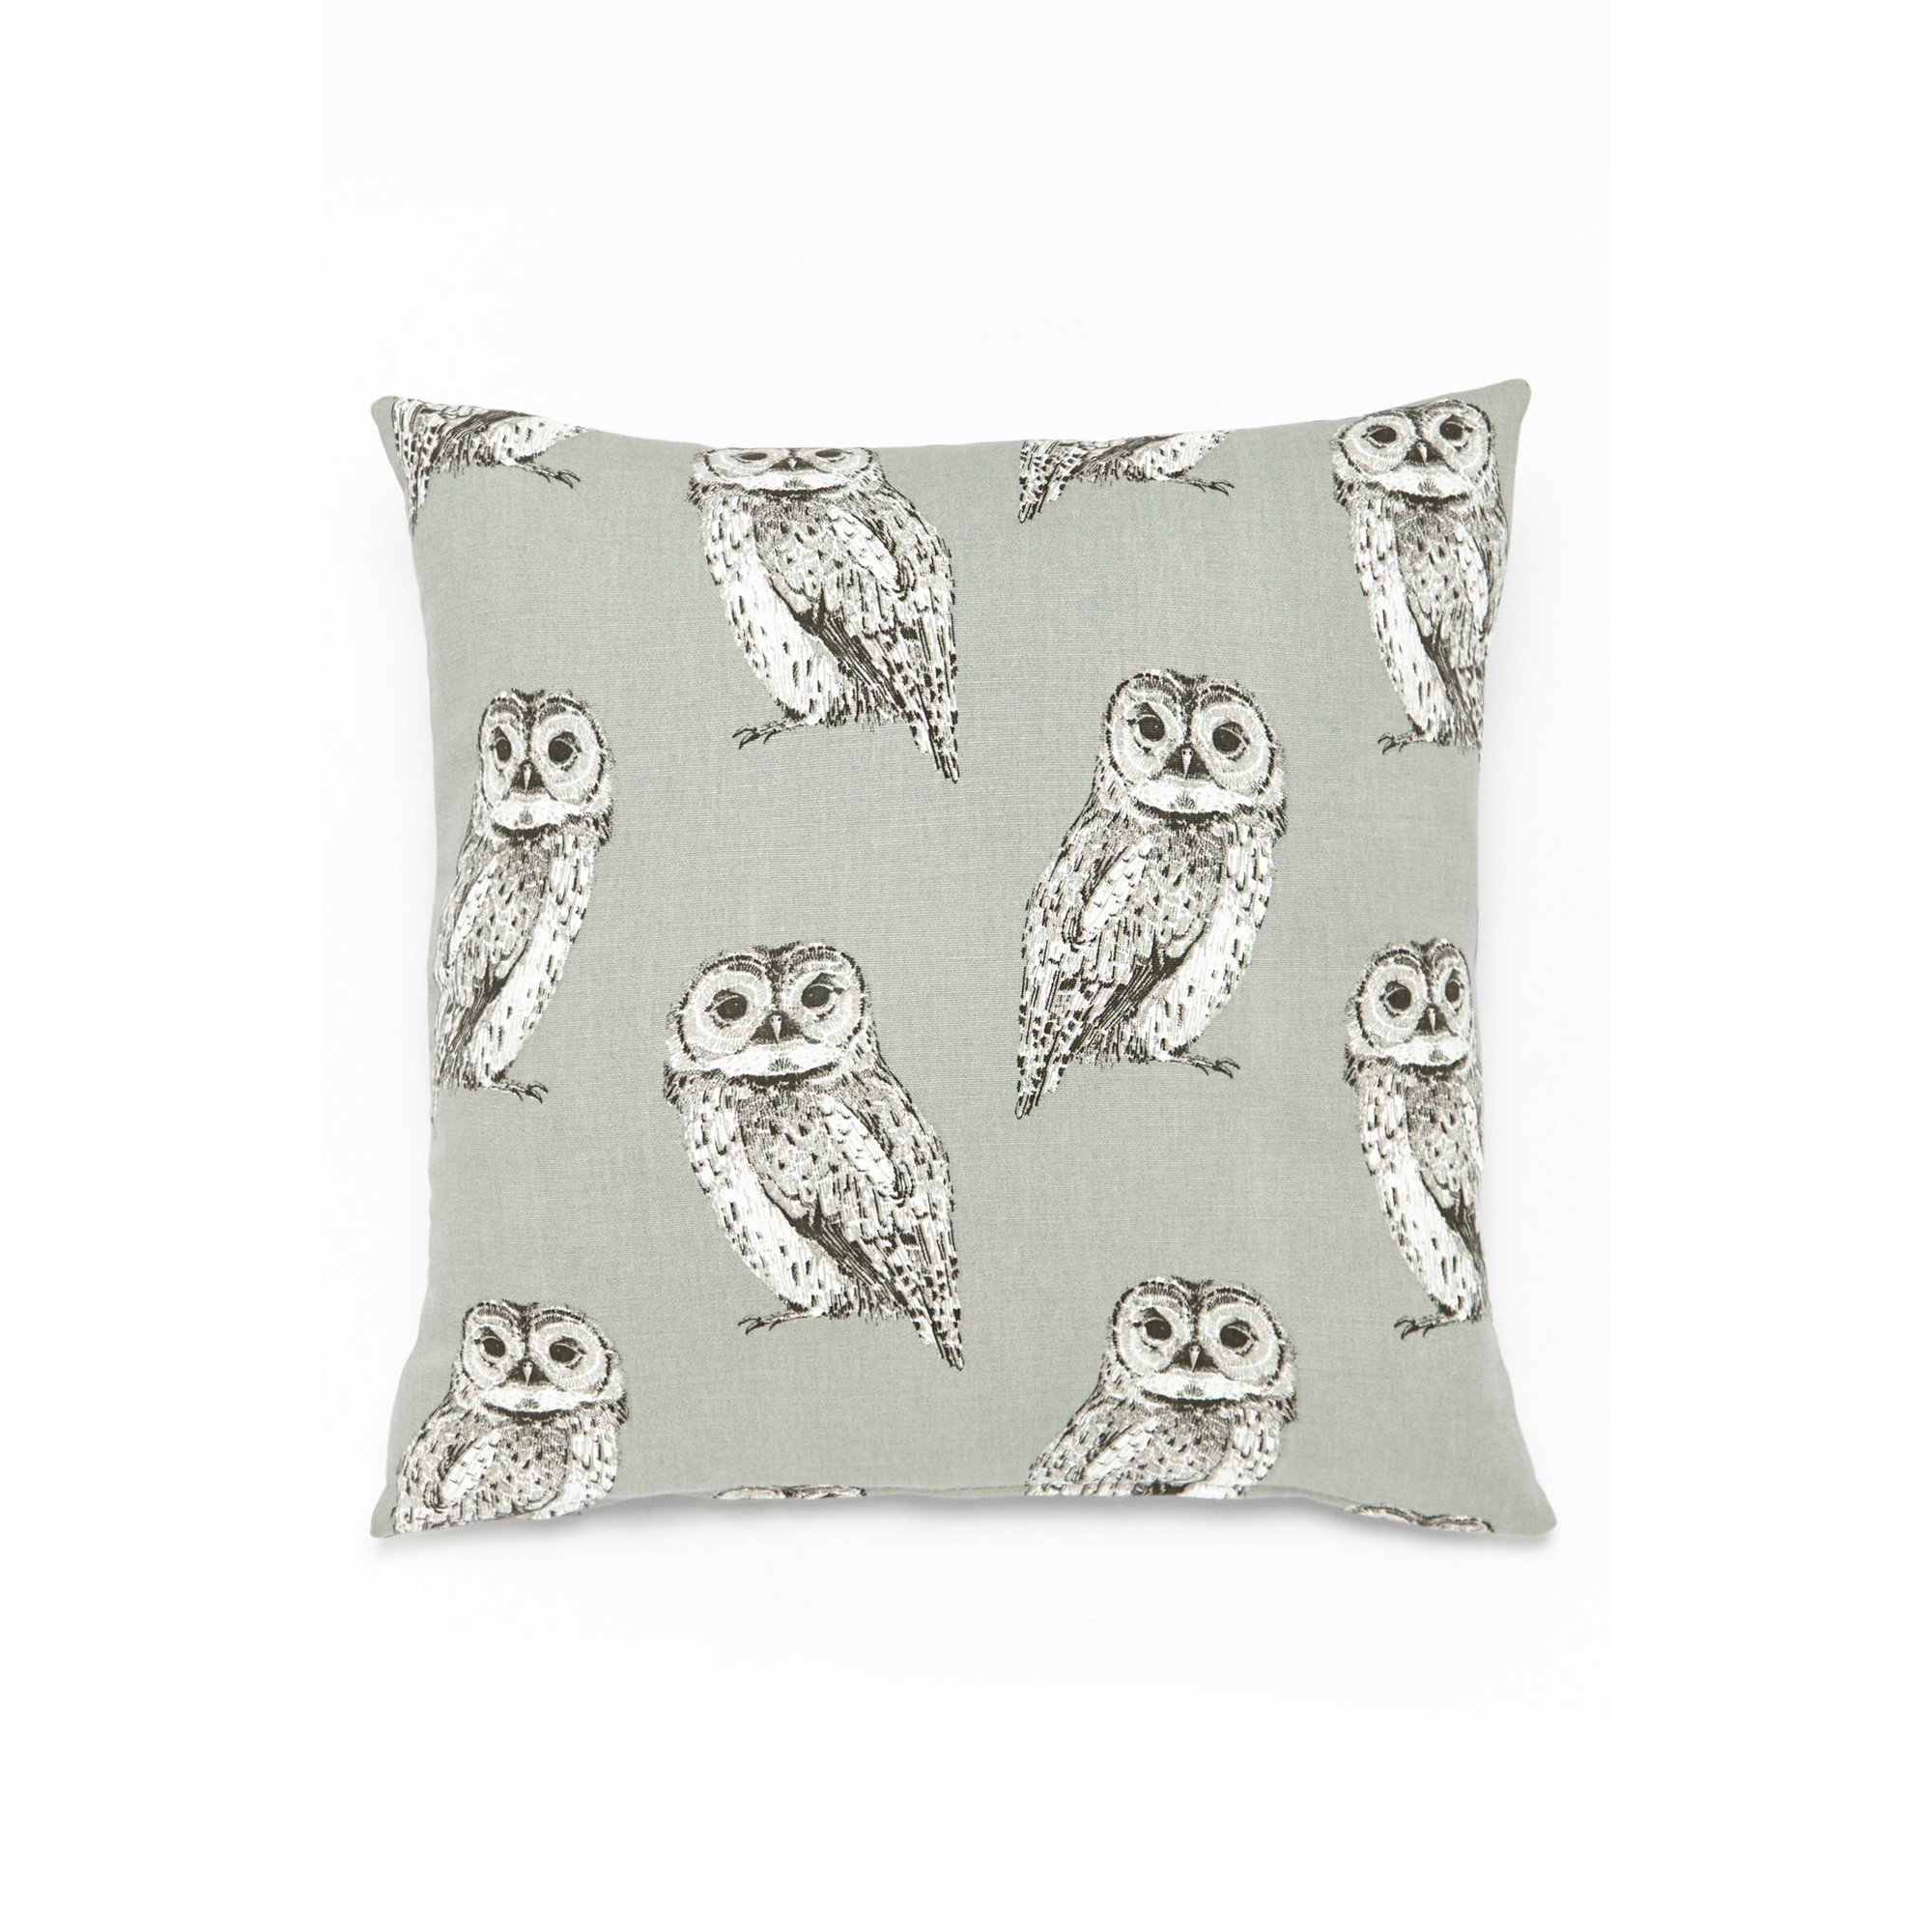 Image of Pair of Filled Owl Cushions